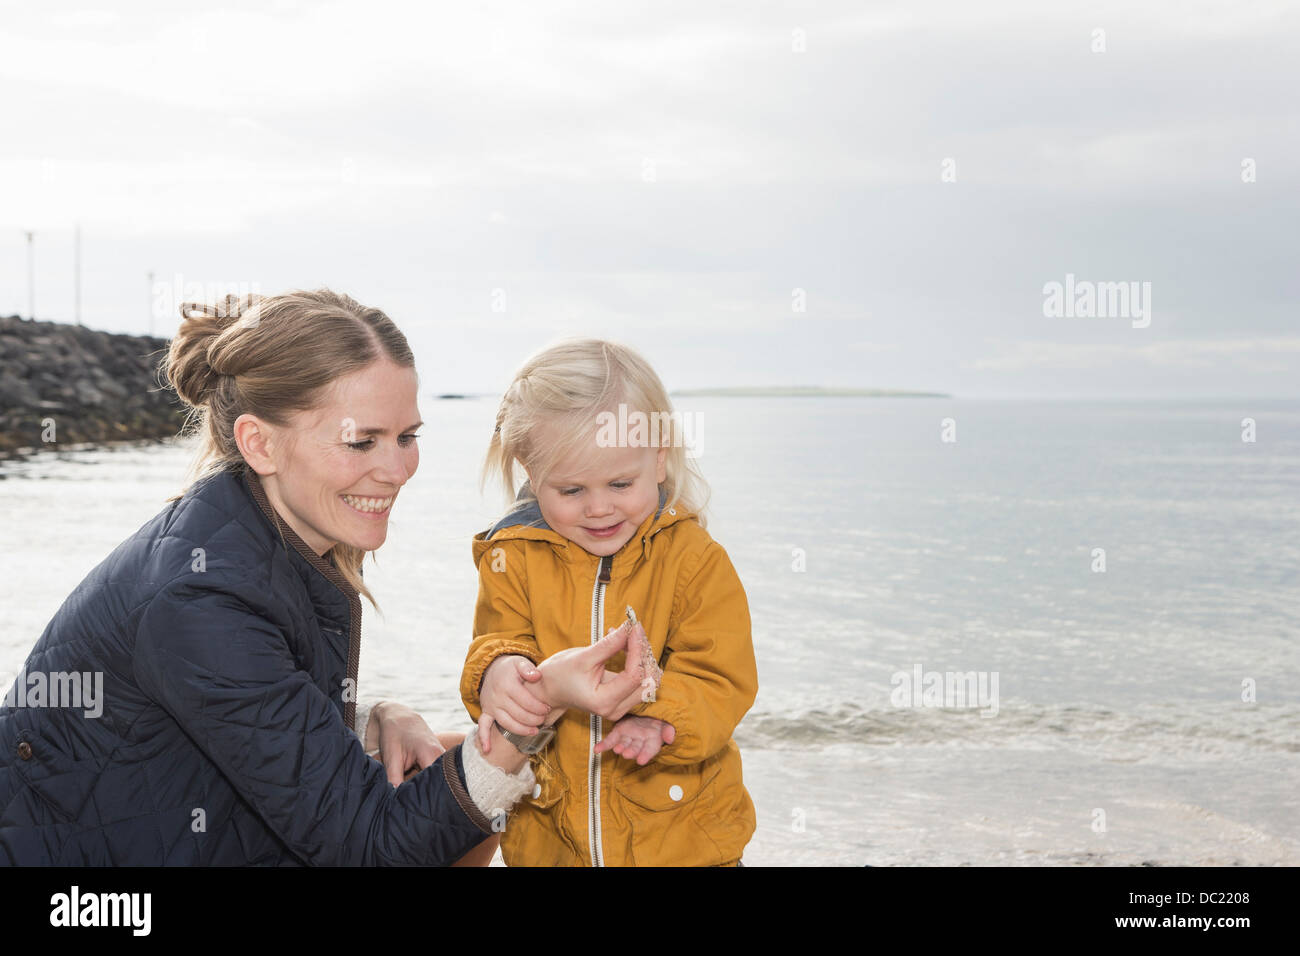 Mother and toddler exploring at coast - Stock Image